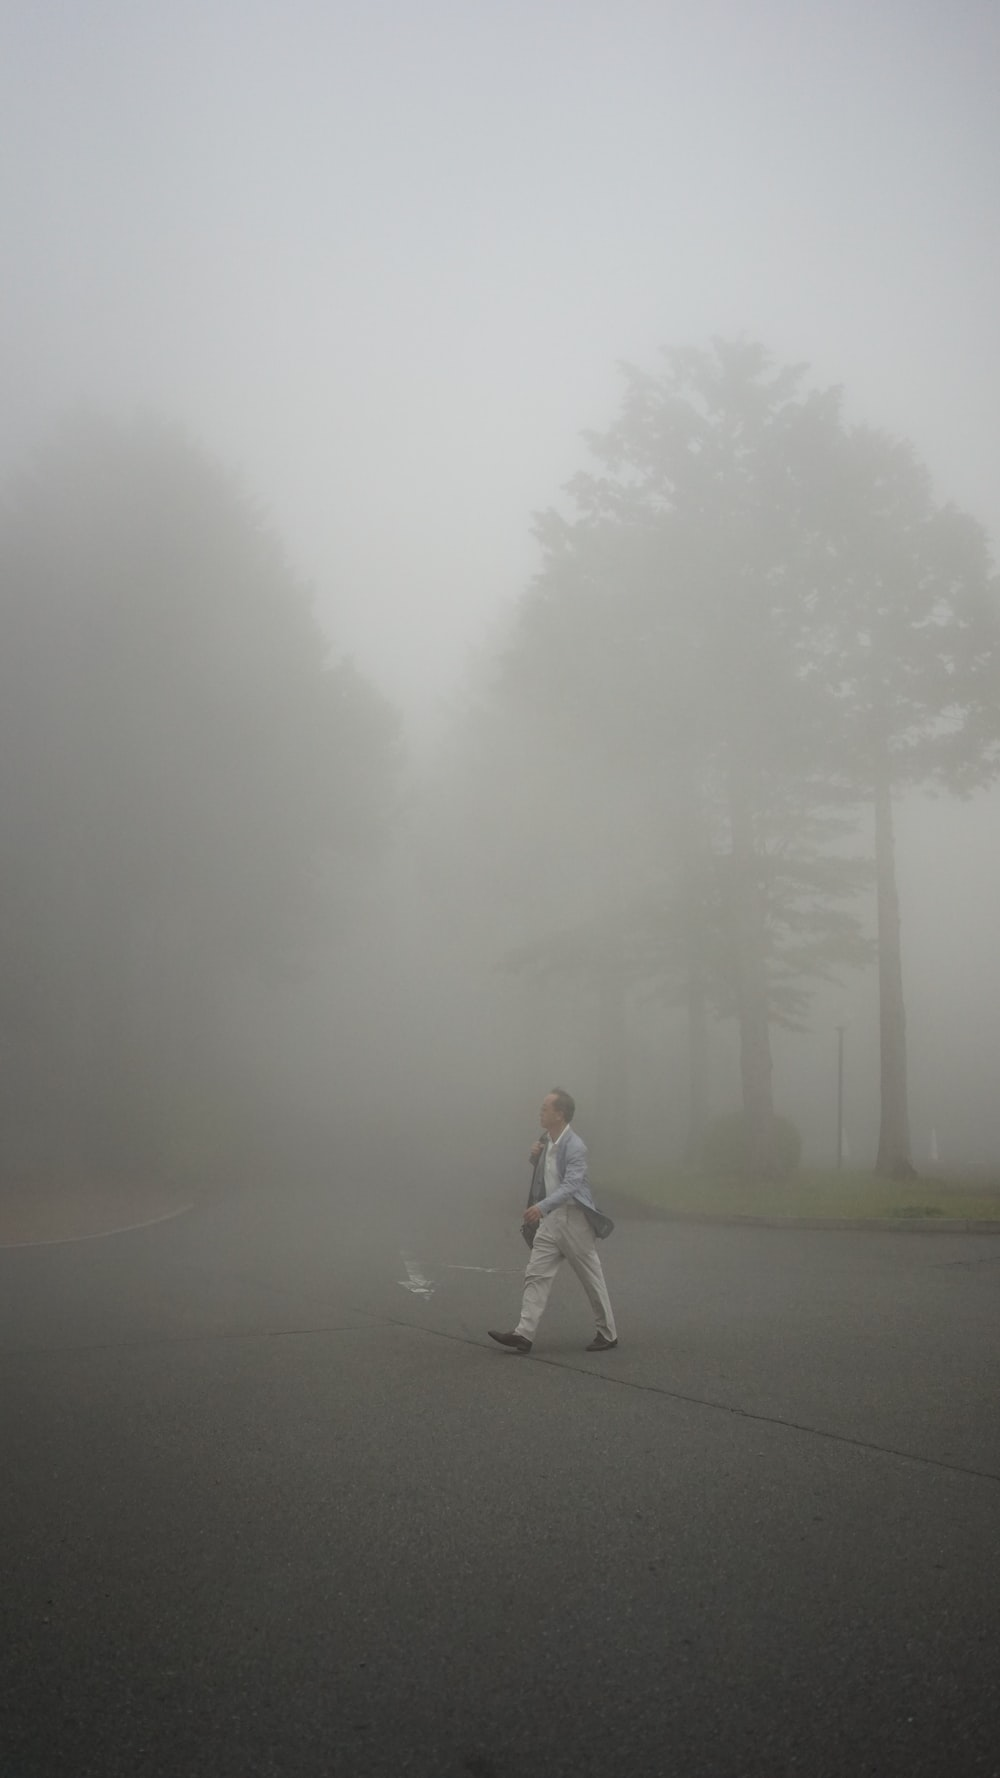 woman in white jacket and gray pants standing on gray asphalt road during foggy weather